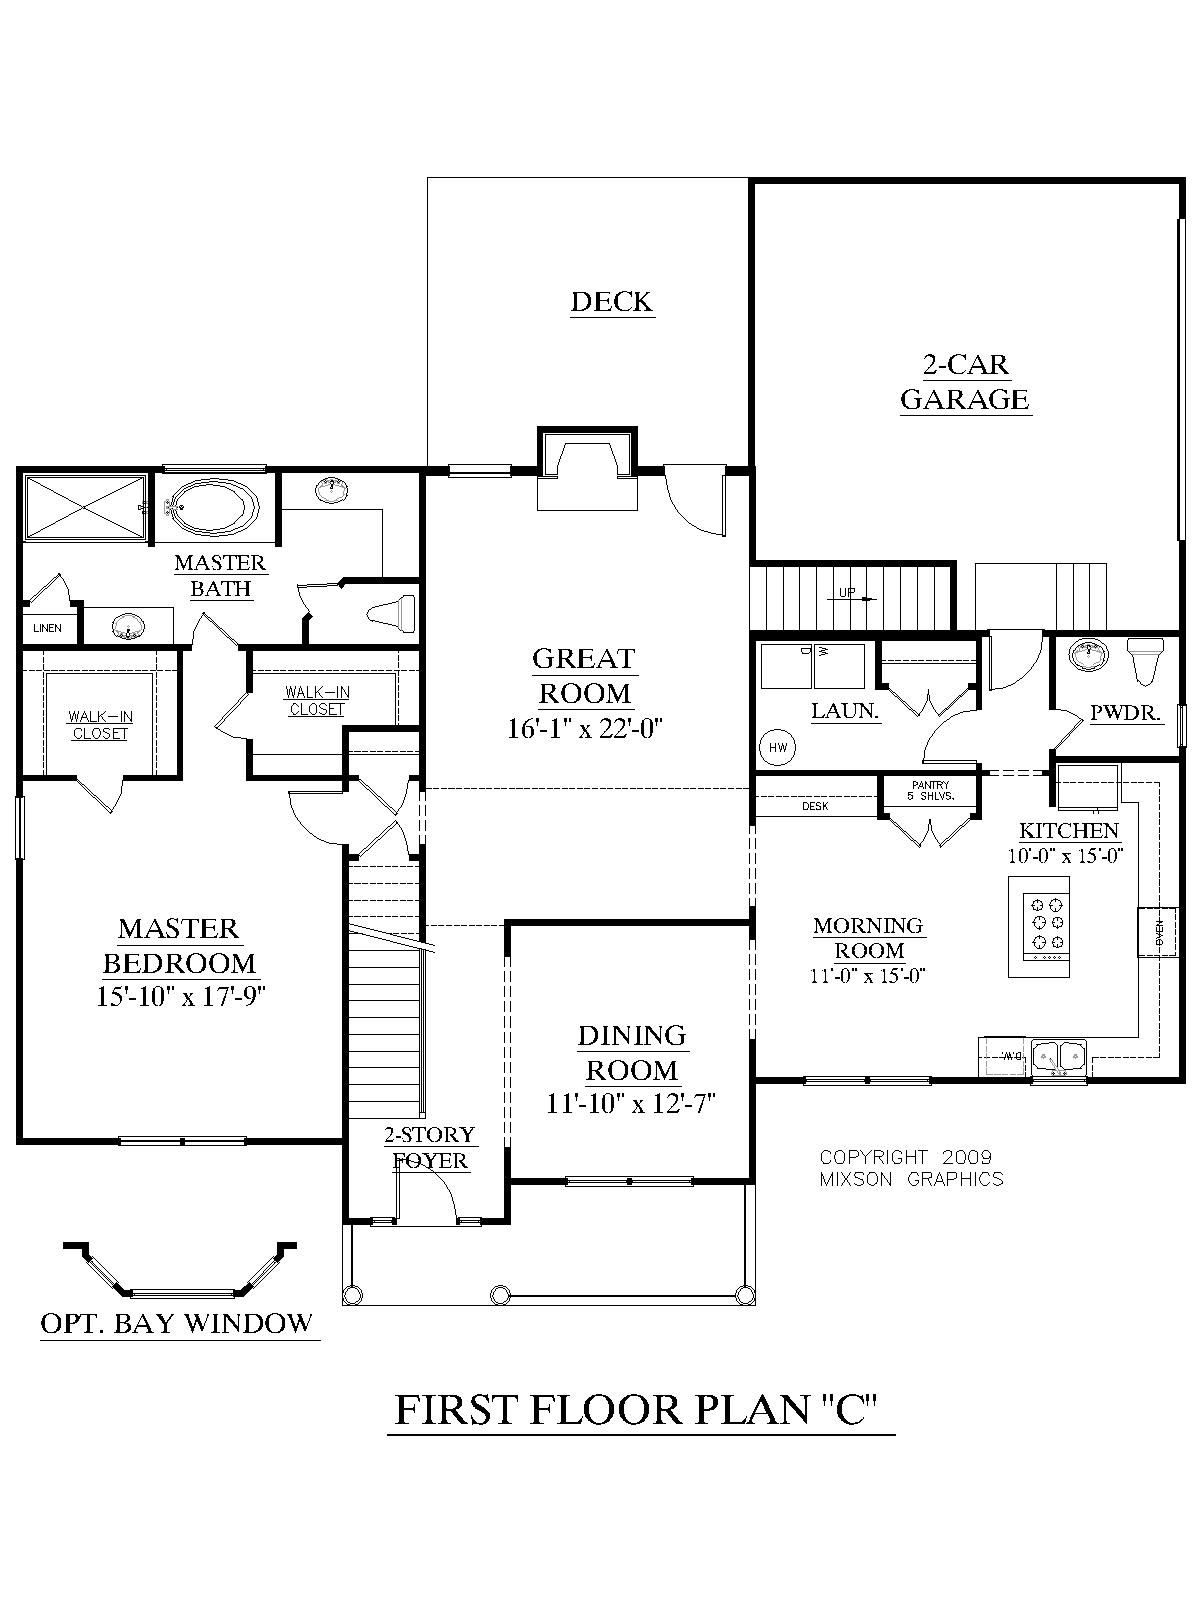 House plan 2675 c longcreek c first floor traditional 2 2 story traditional house plans